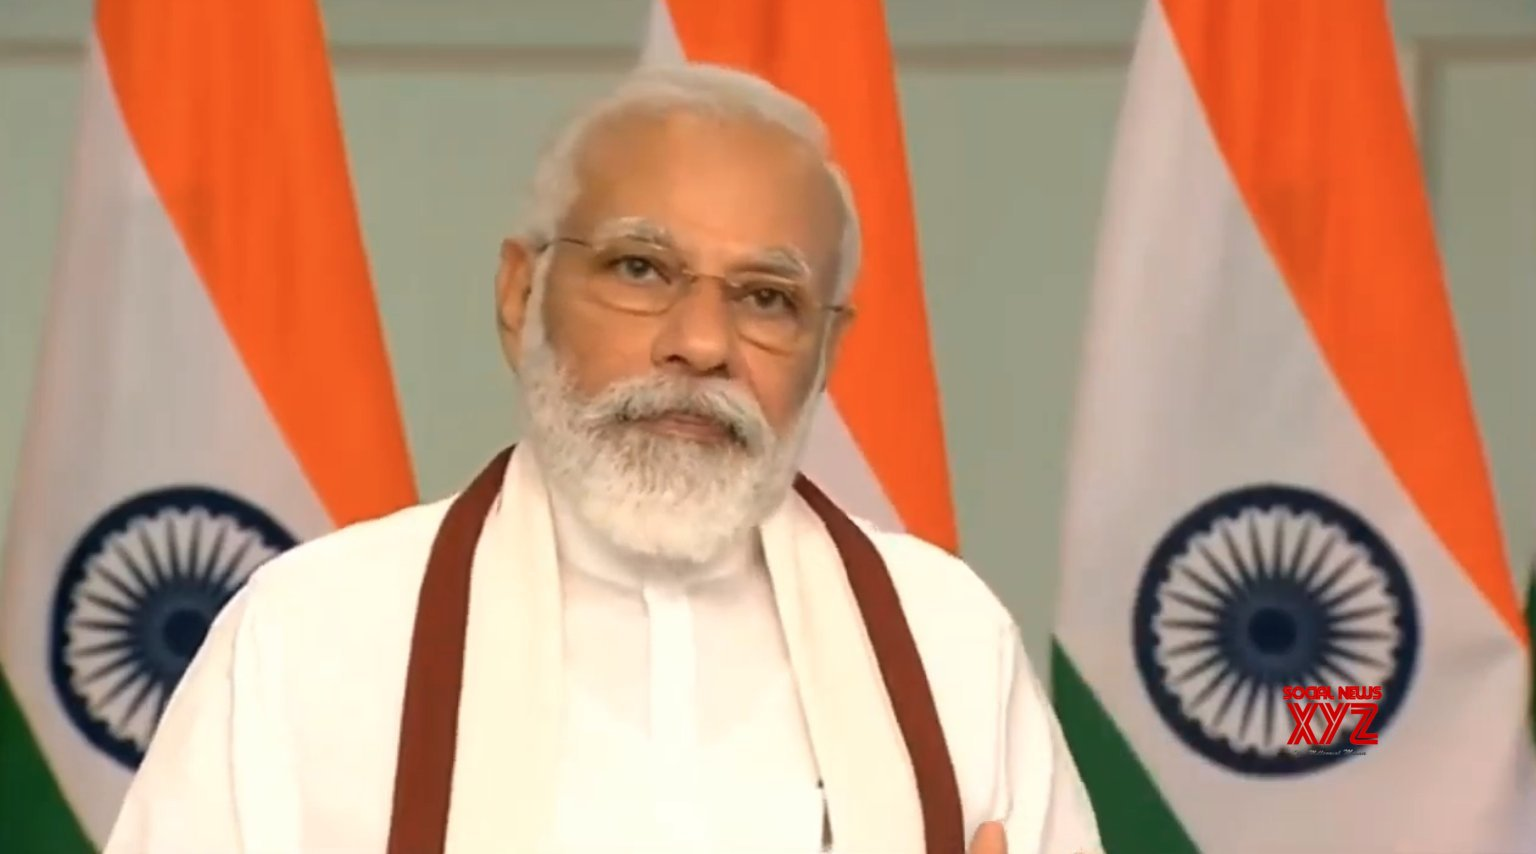 PM Modi to address the nation at 4 pm on Tuesday